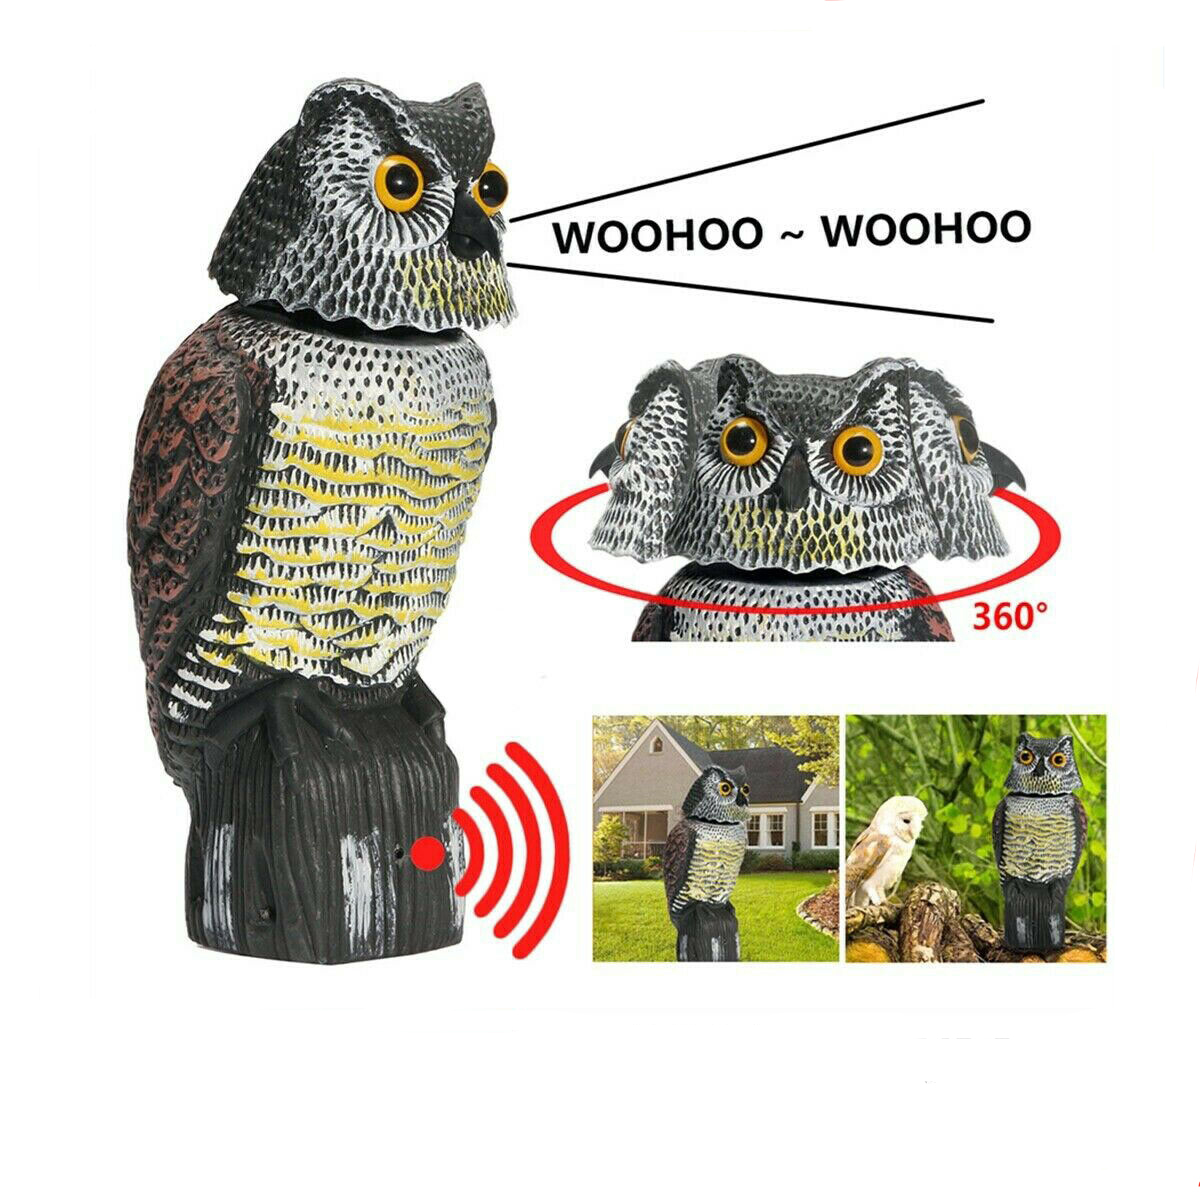 Bird Scarer 360°Rotate Head Sound Owl Decoy Protection Repellent Pest Control Scarecrow Garden Yard Move Decor